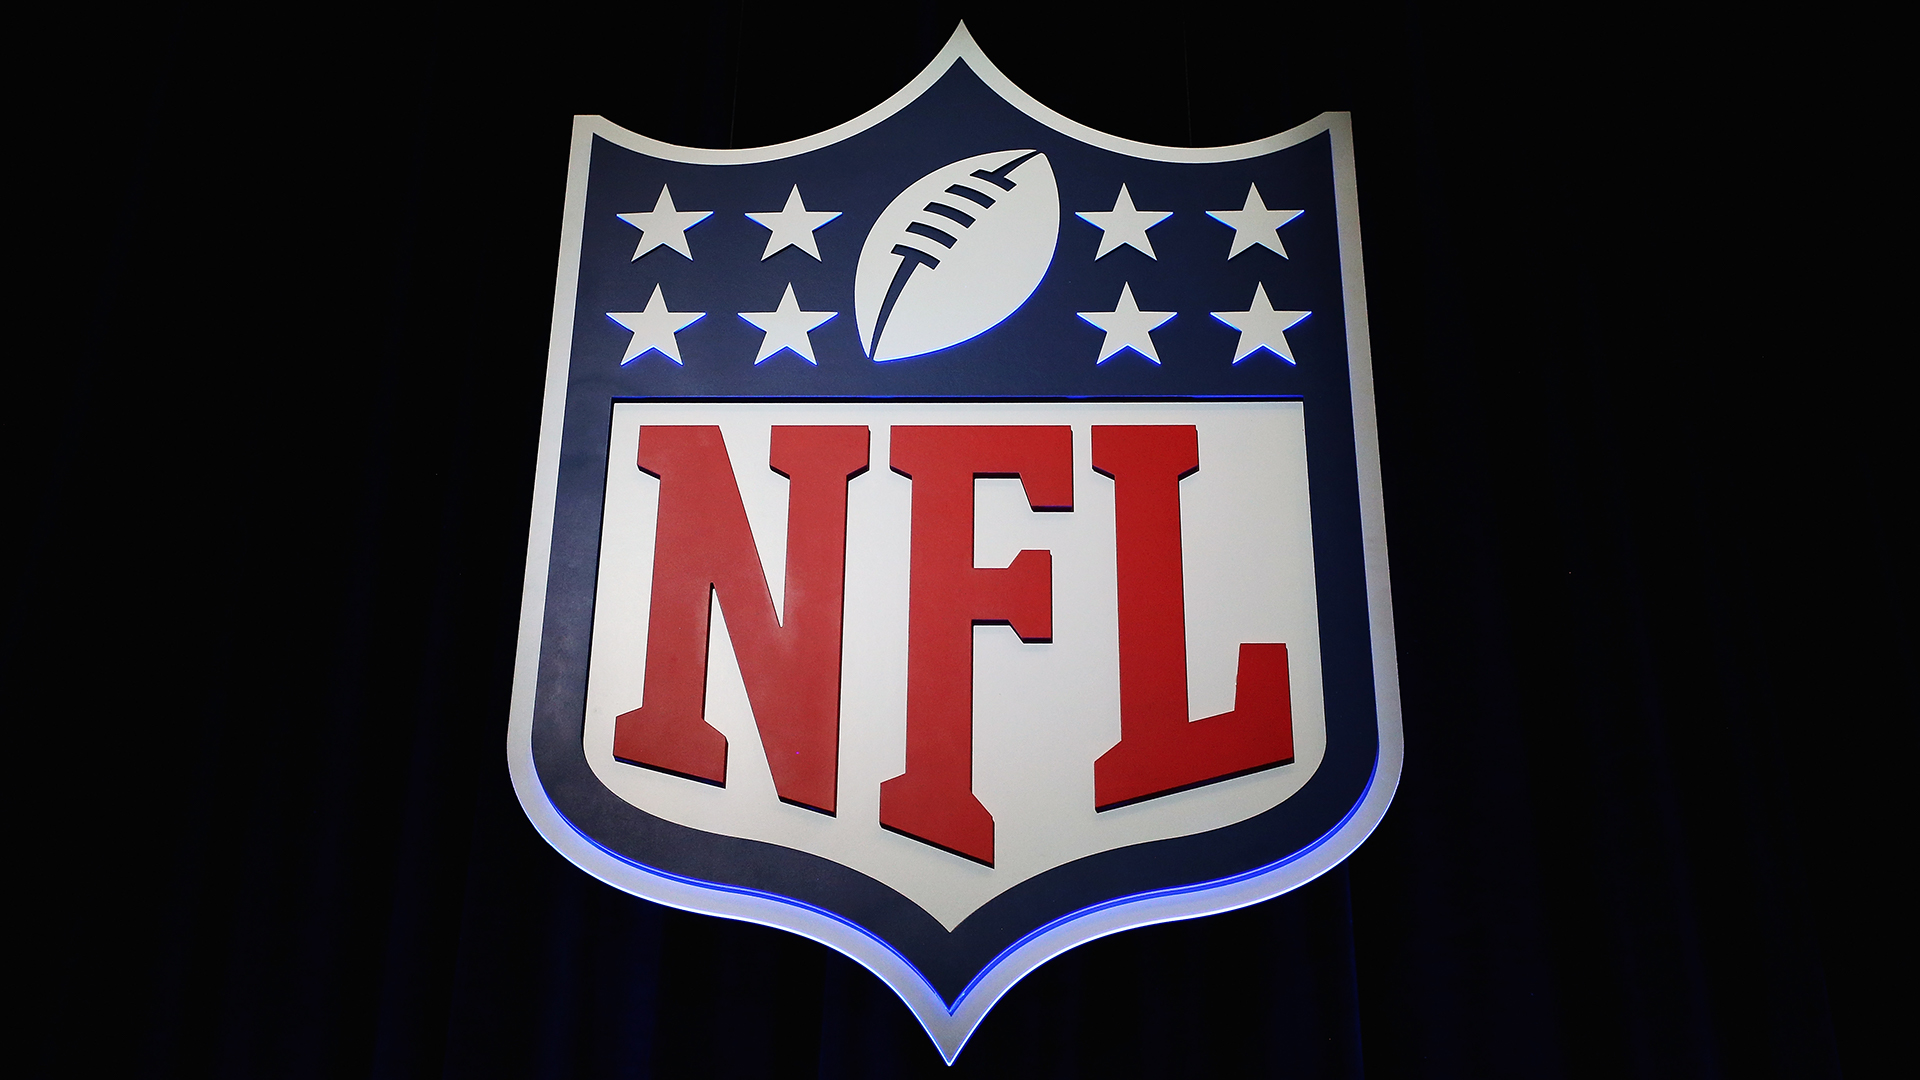 NFL Logo Shield-159532.jpg69748929